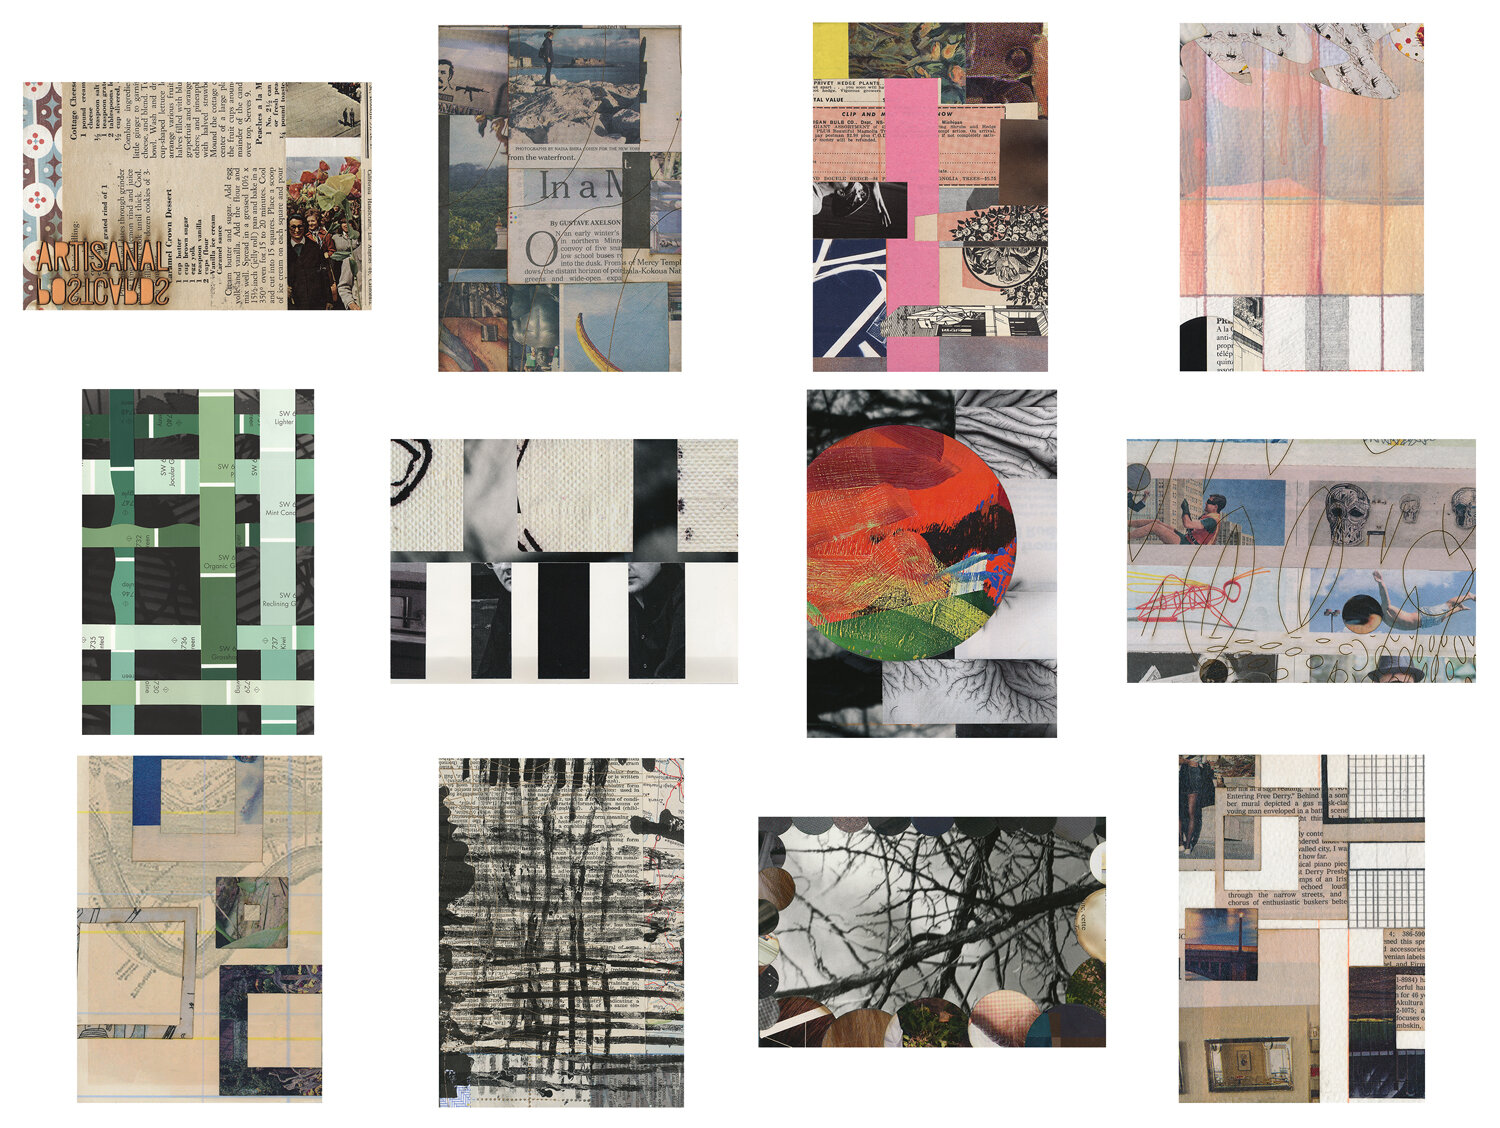 A completed mail art subscription, snail mailed small works of collage in postcard form to BB, June 2014 – May 2015.  Artisanal Postcards Numbers 894 • 1,110 • 919 • 980 • 1,025 • 941 • 1,038 • 997 • 1,092 • 1,066 • 1,060 • 880